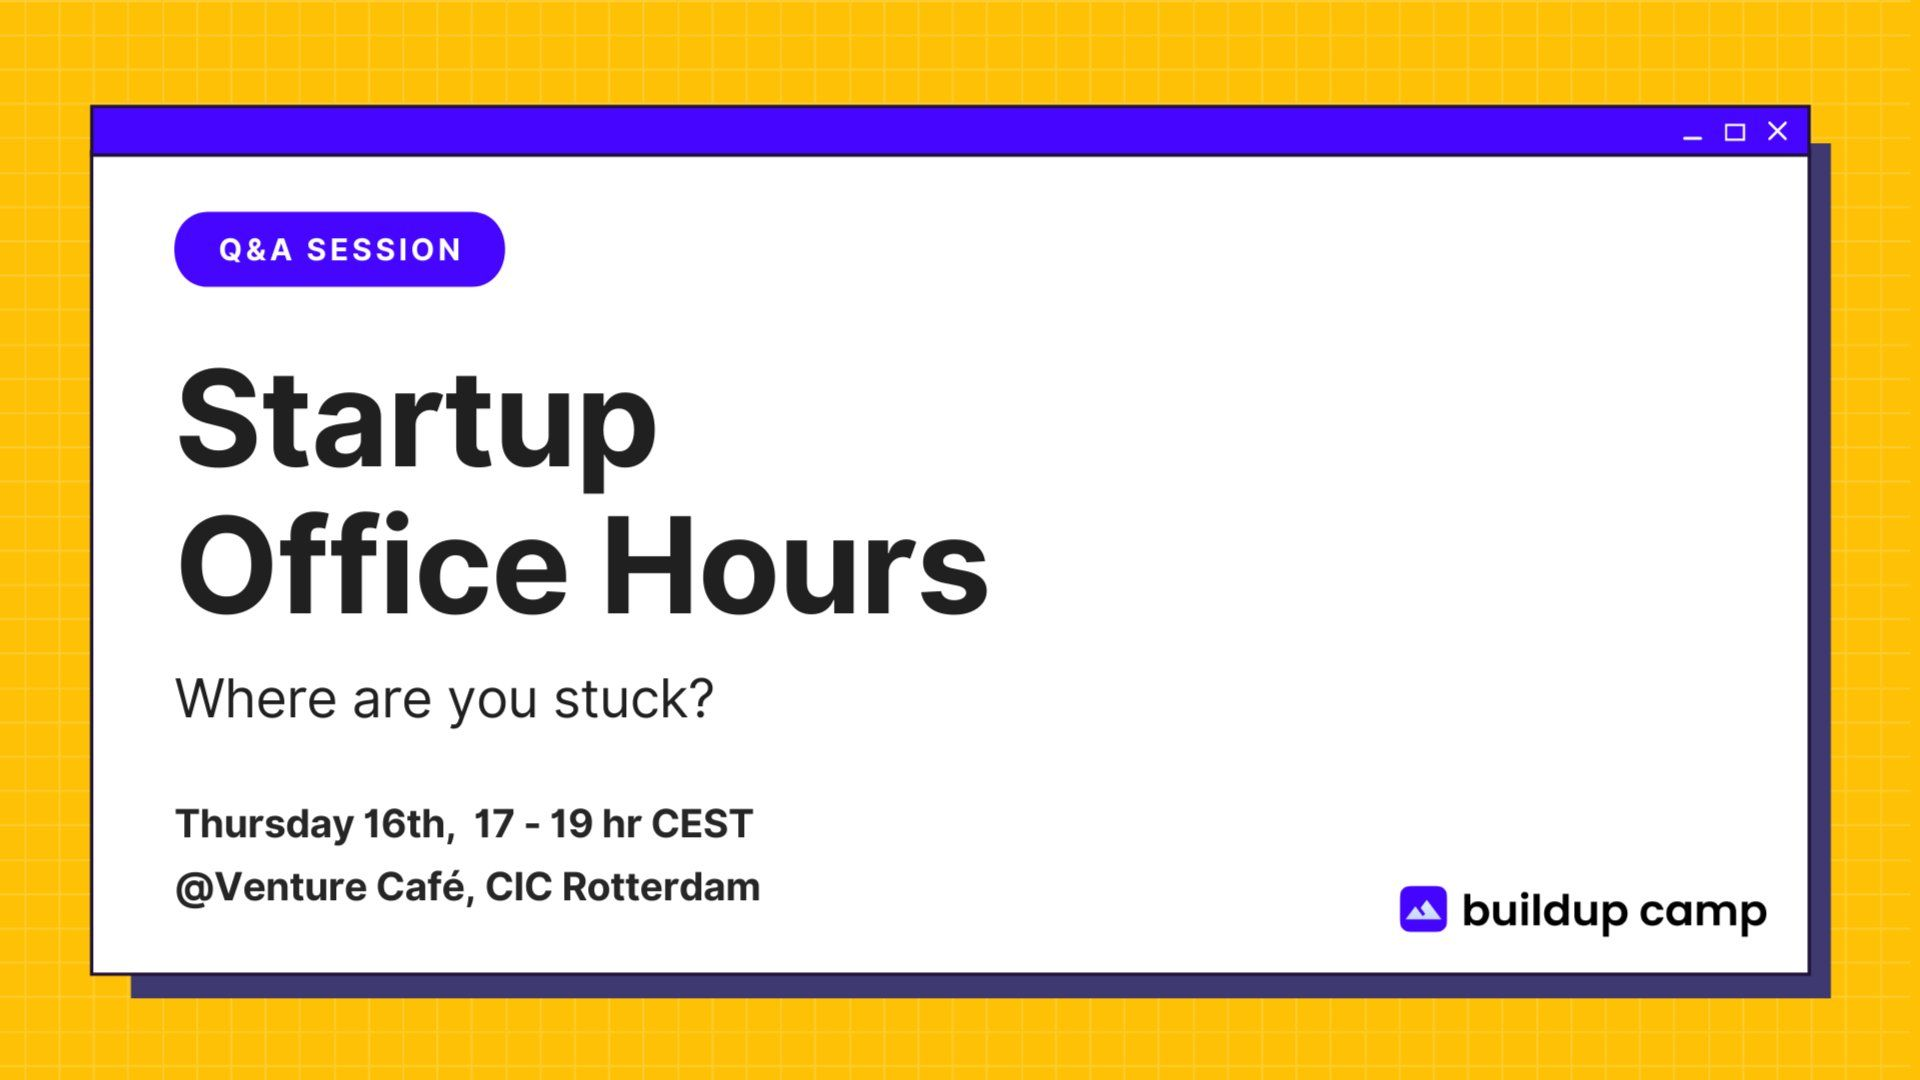 Startup Office Hours